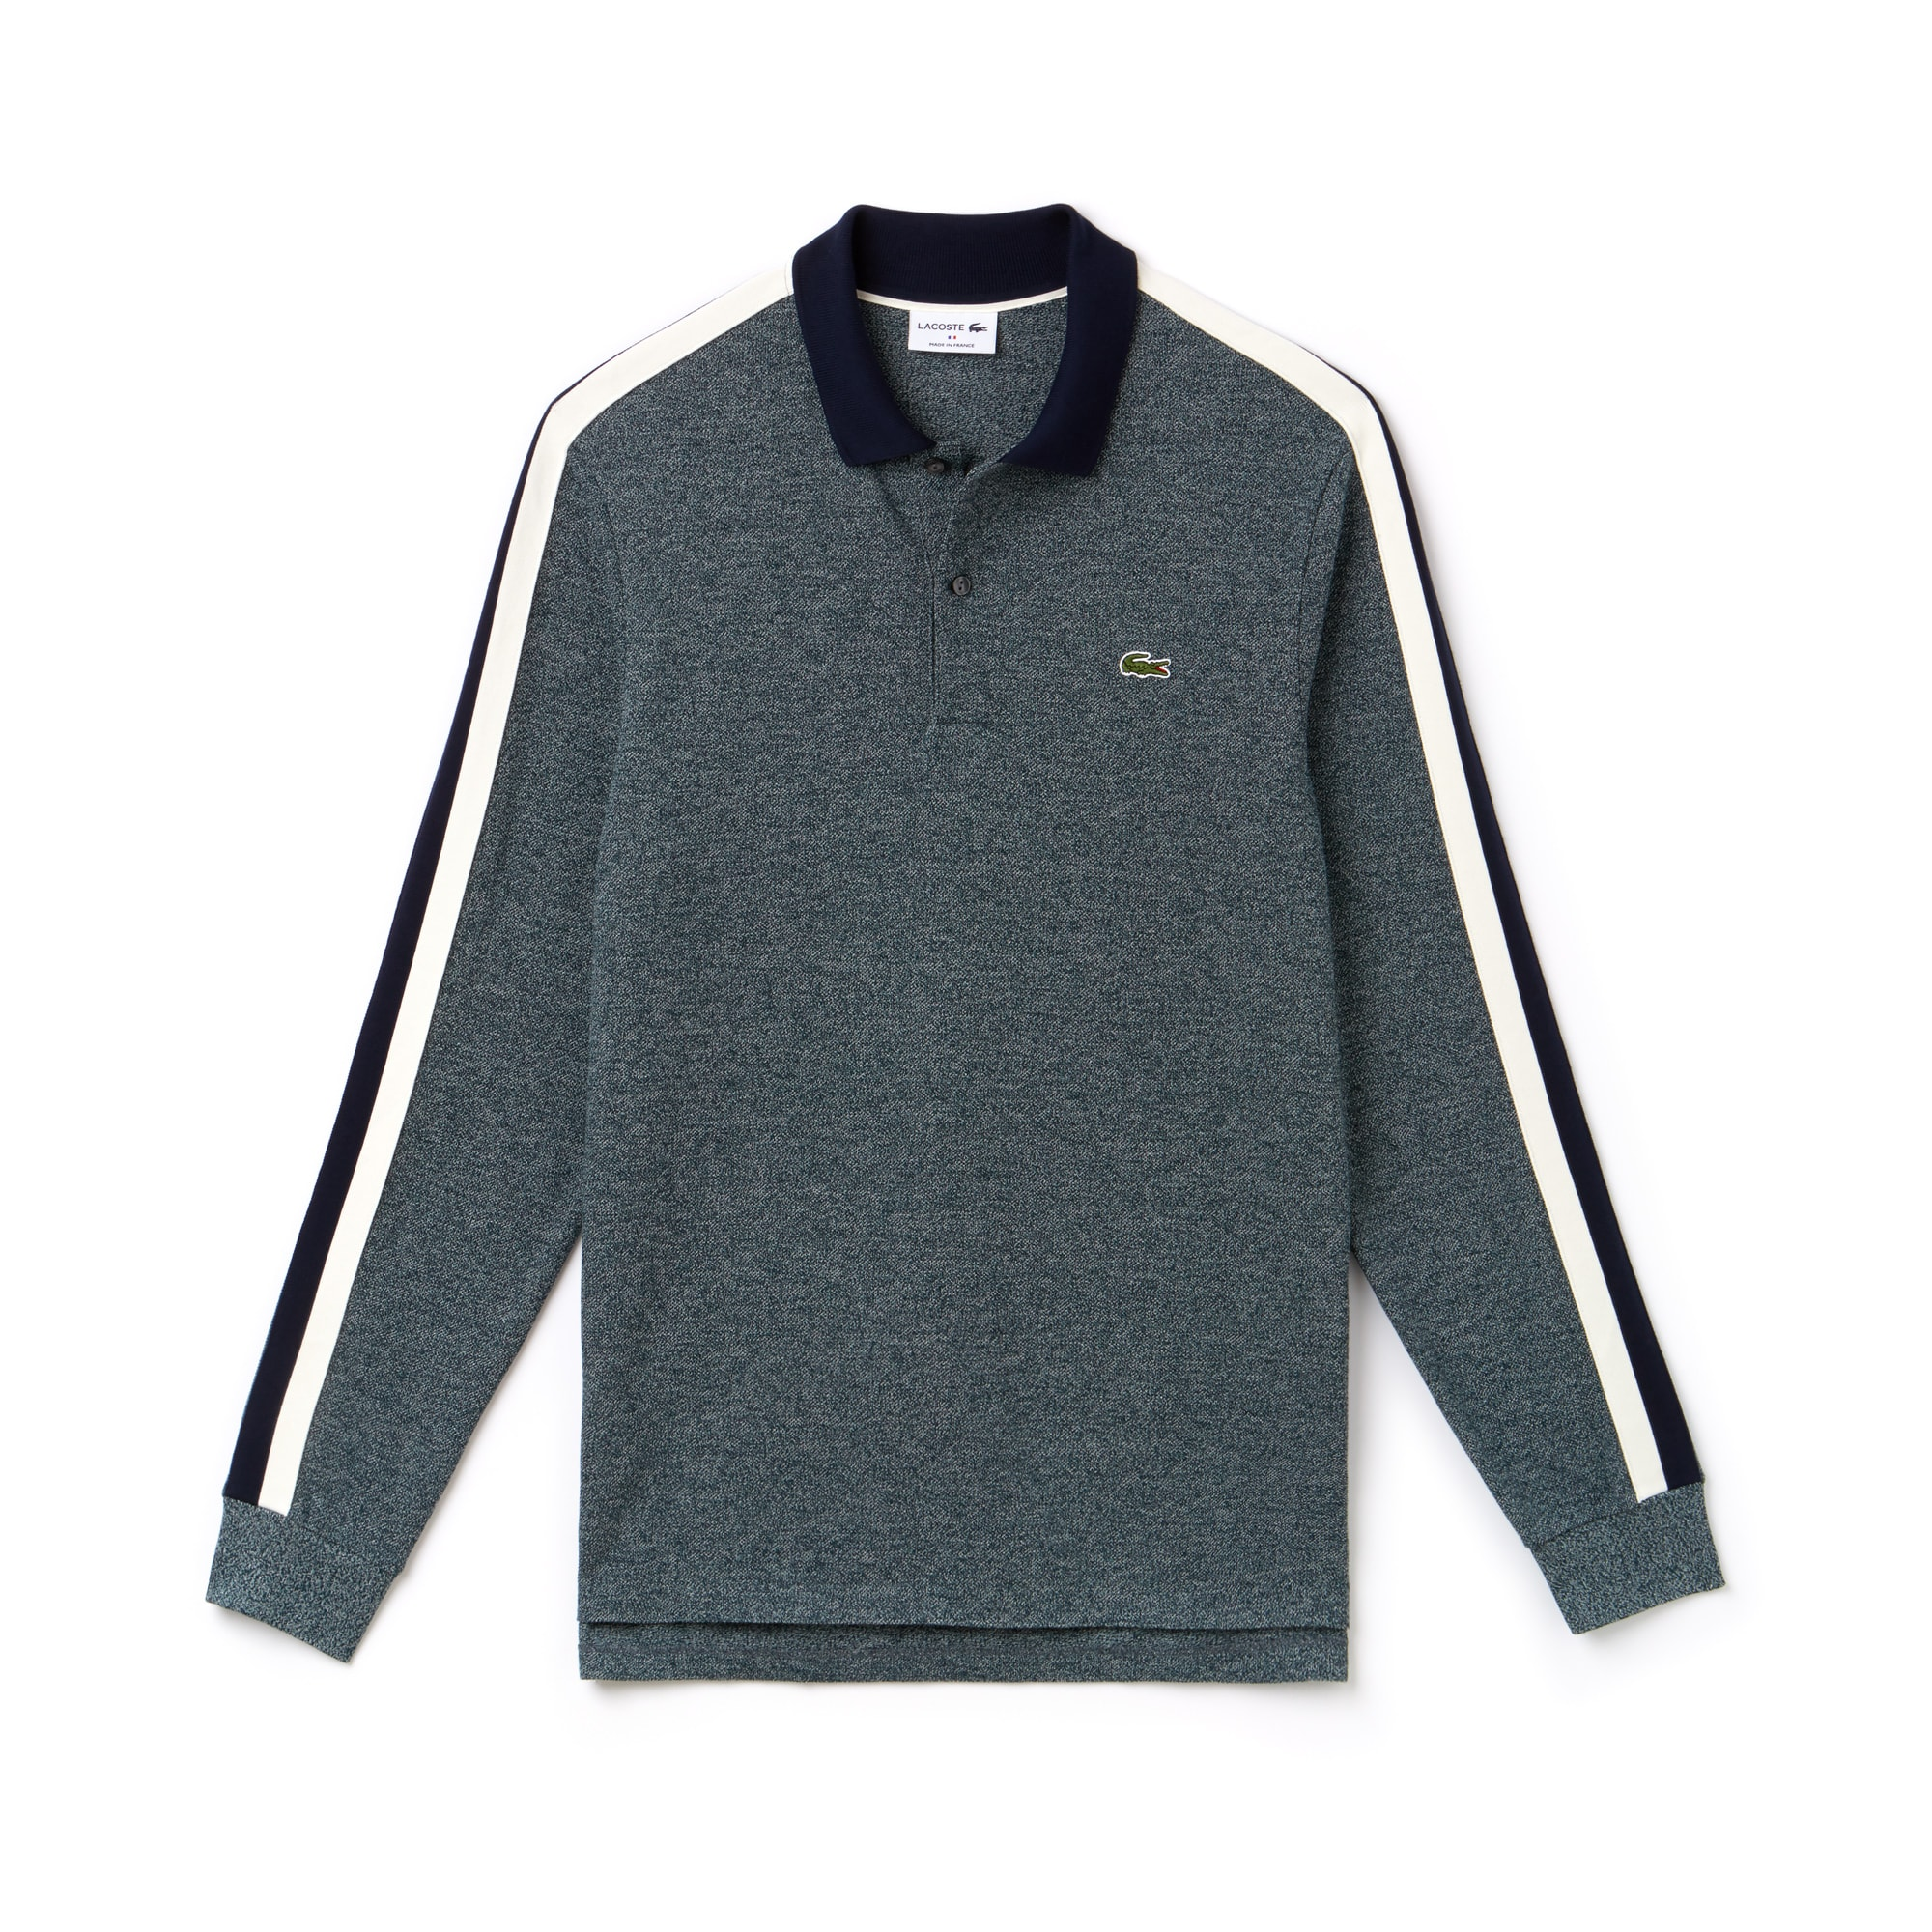 Piqué In France Regular Lacoste I4ovyfqnow Made Fit Men's Polo wN8nm0vO